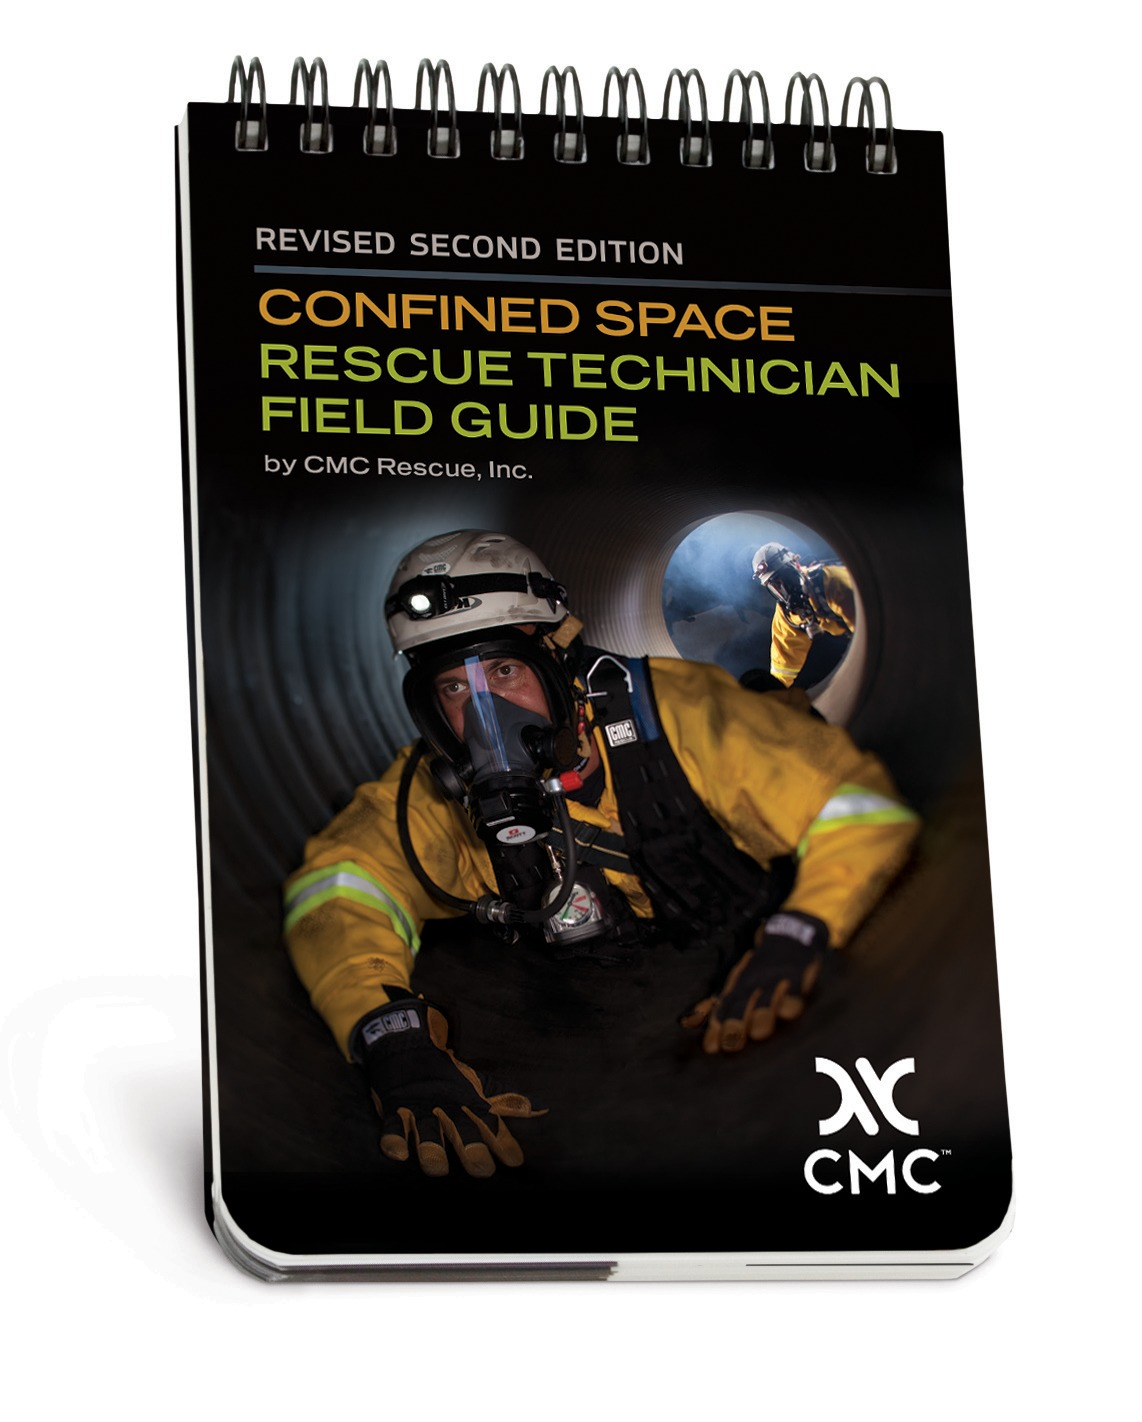 Fire technical rope rescue training manual cmc pro confined space rescue technician field guide fandeluxe Image collections